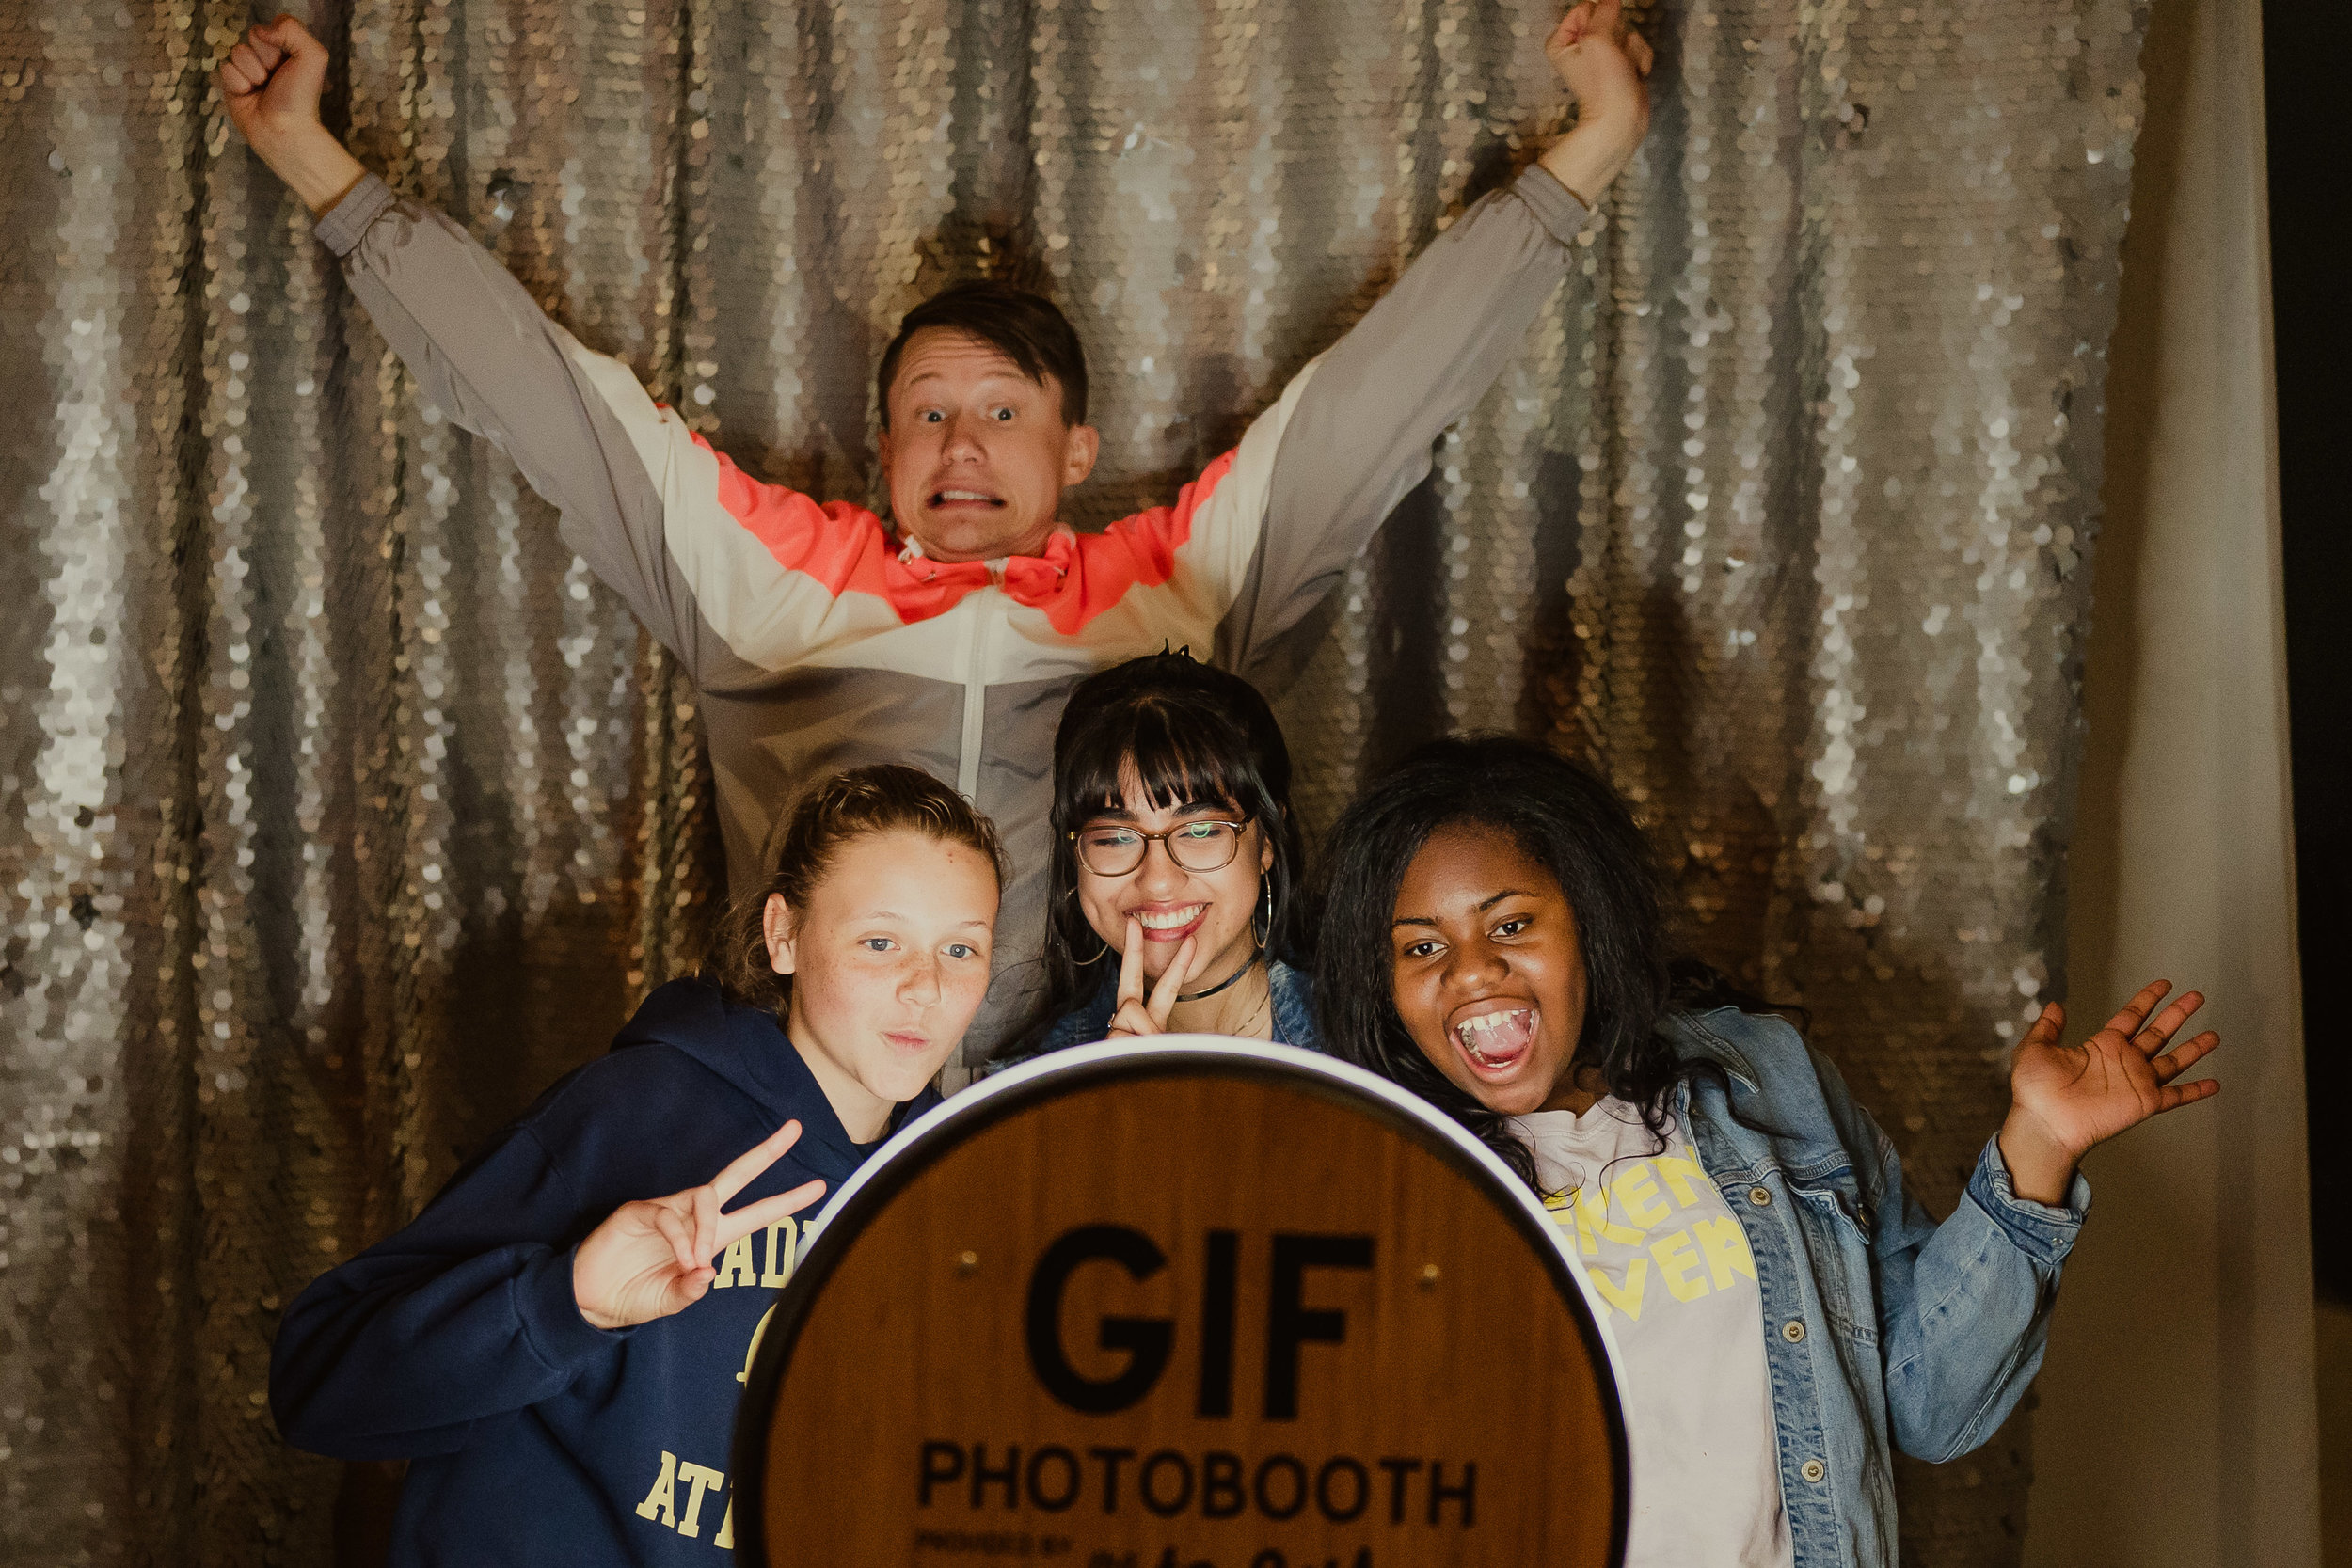 Fun with our GIF Booth in Frisco on wednesday